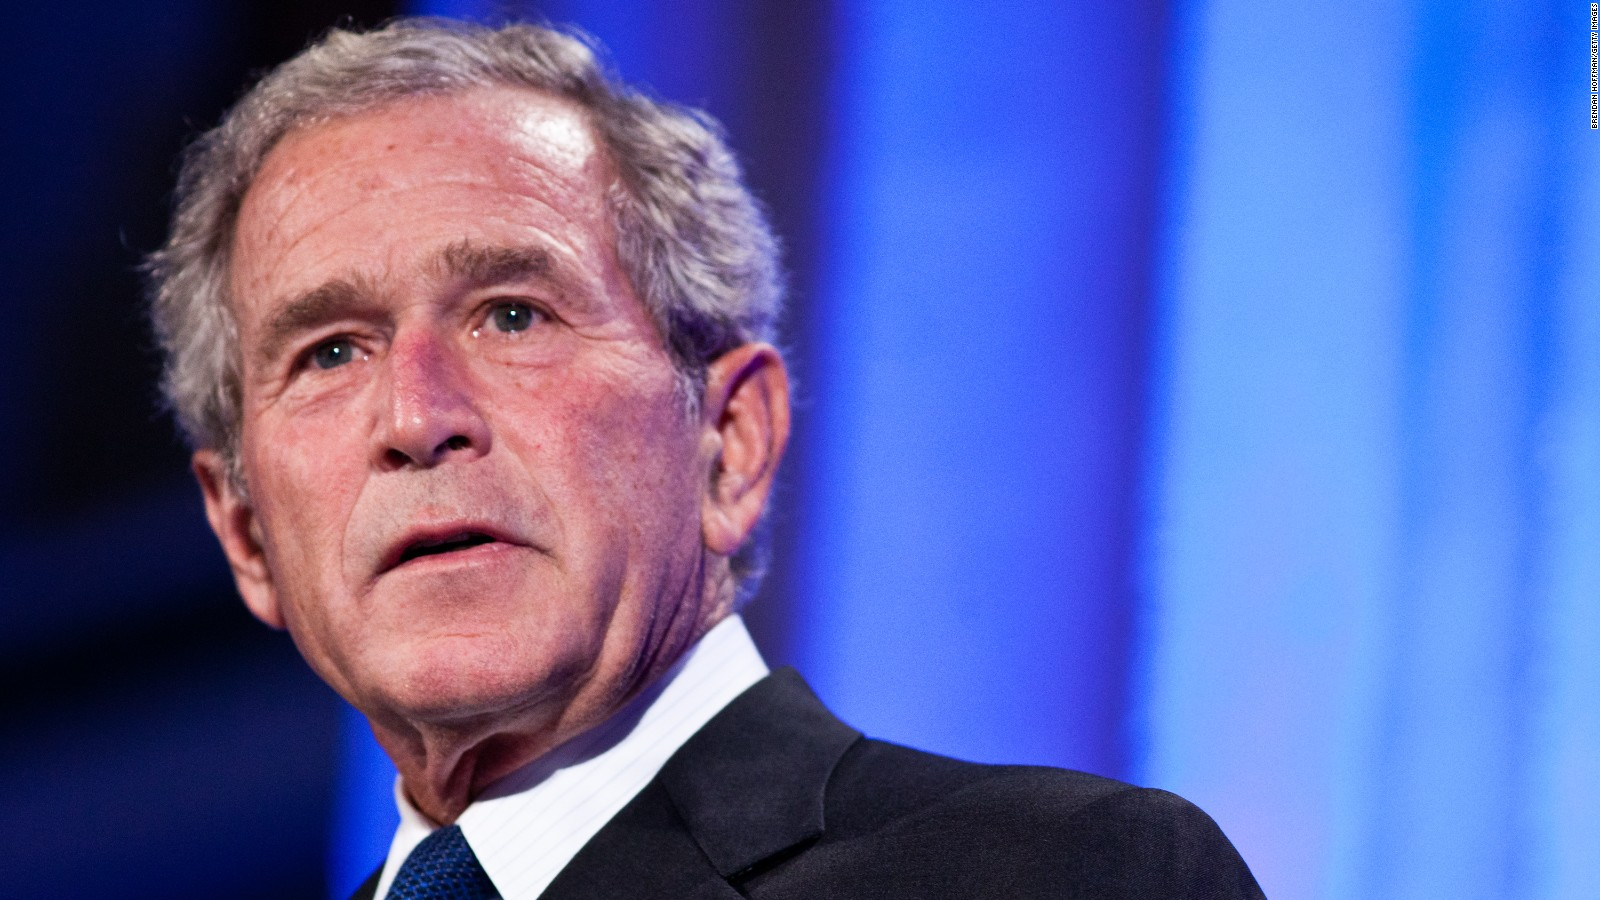 george w bush charged vets group 100k for speech cnnpolitics